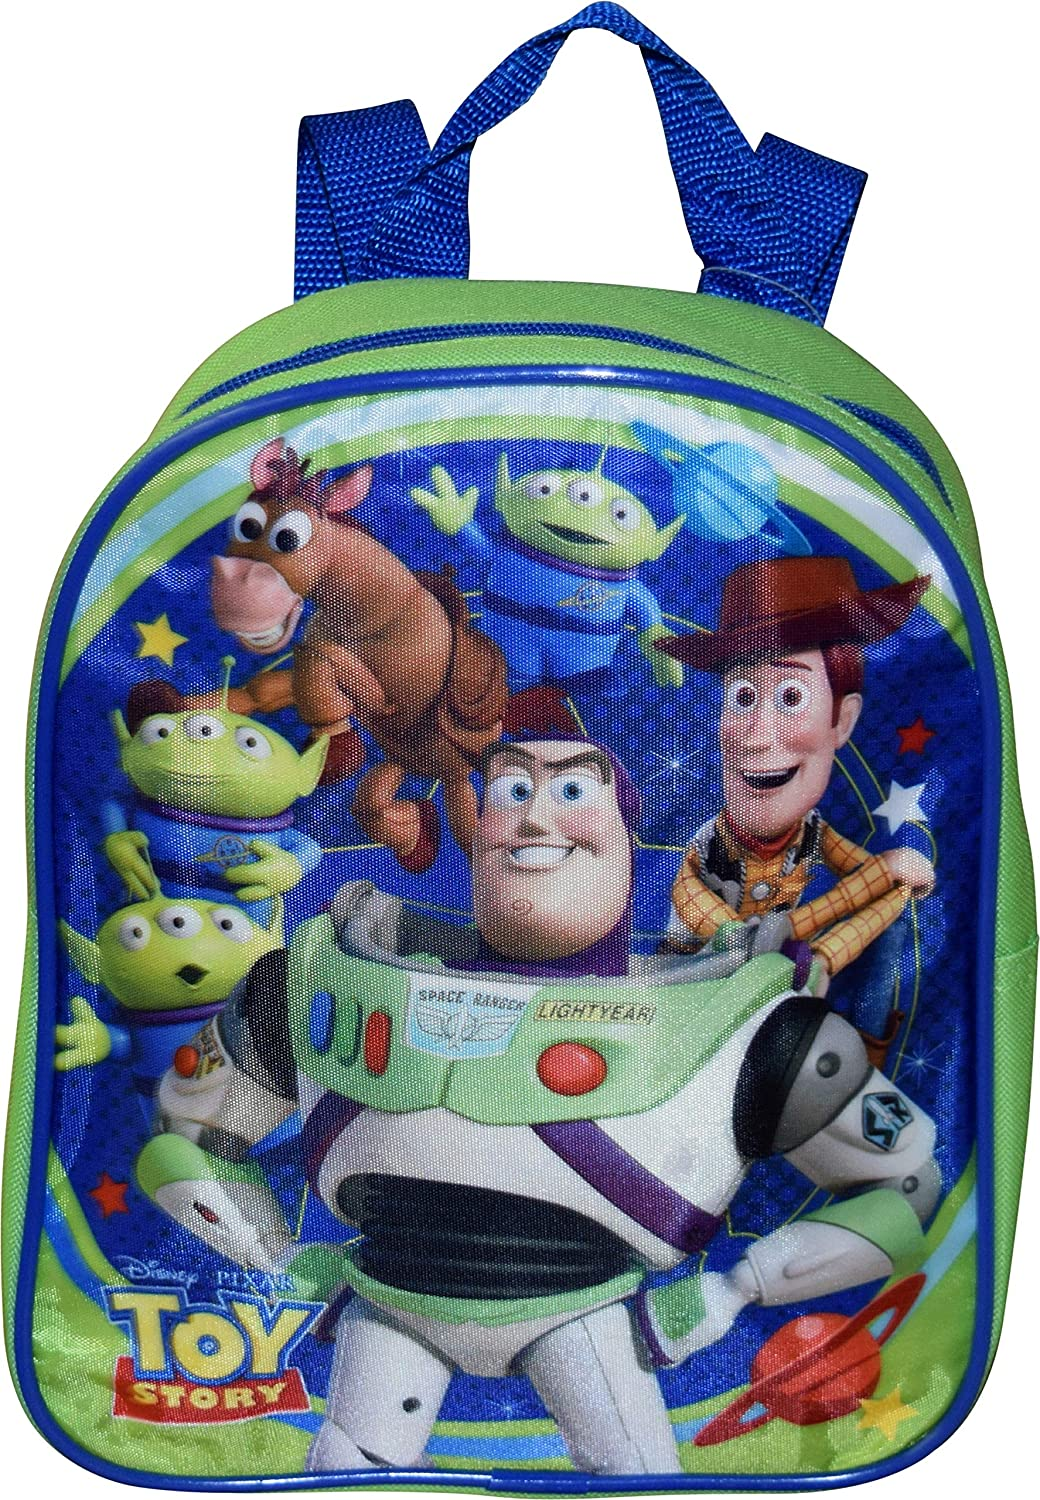 Toy Story 10 Small Backpack